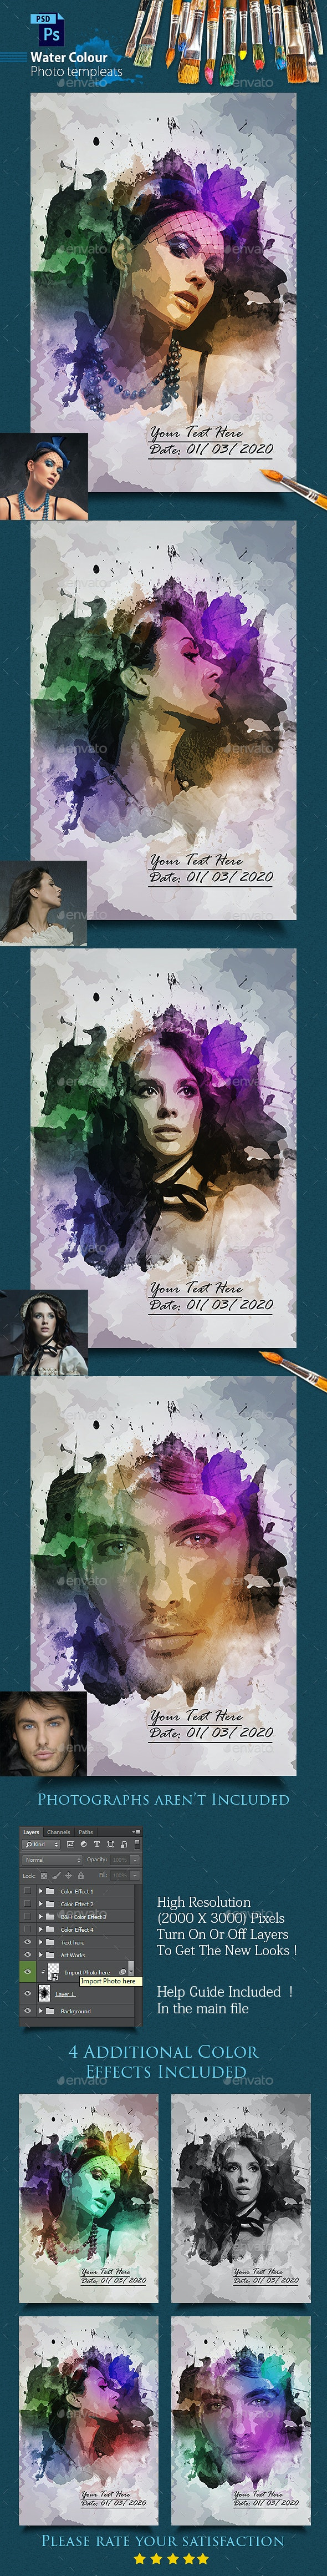 Artistic Photo Template - Artistic Photo Templates